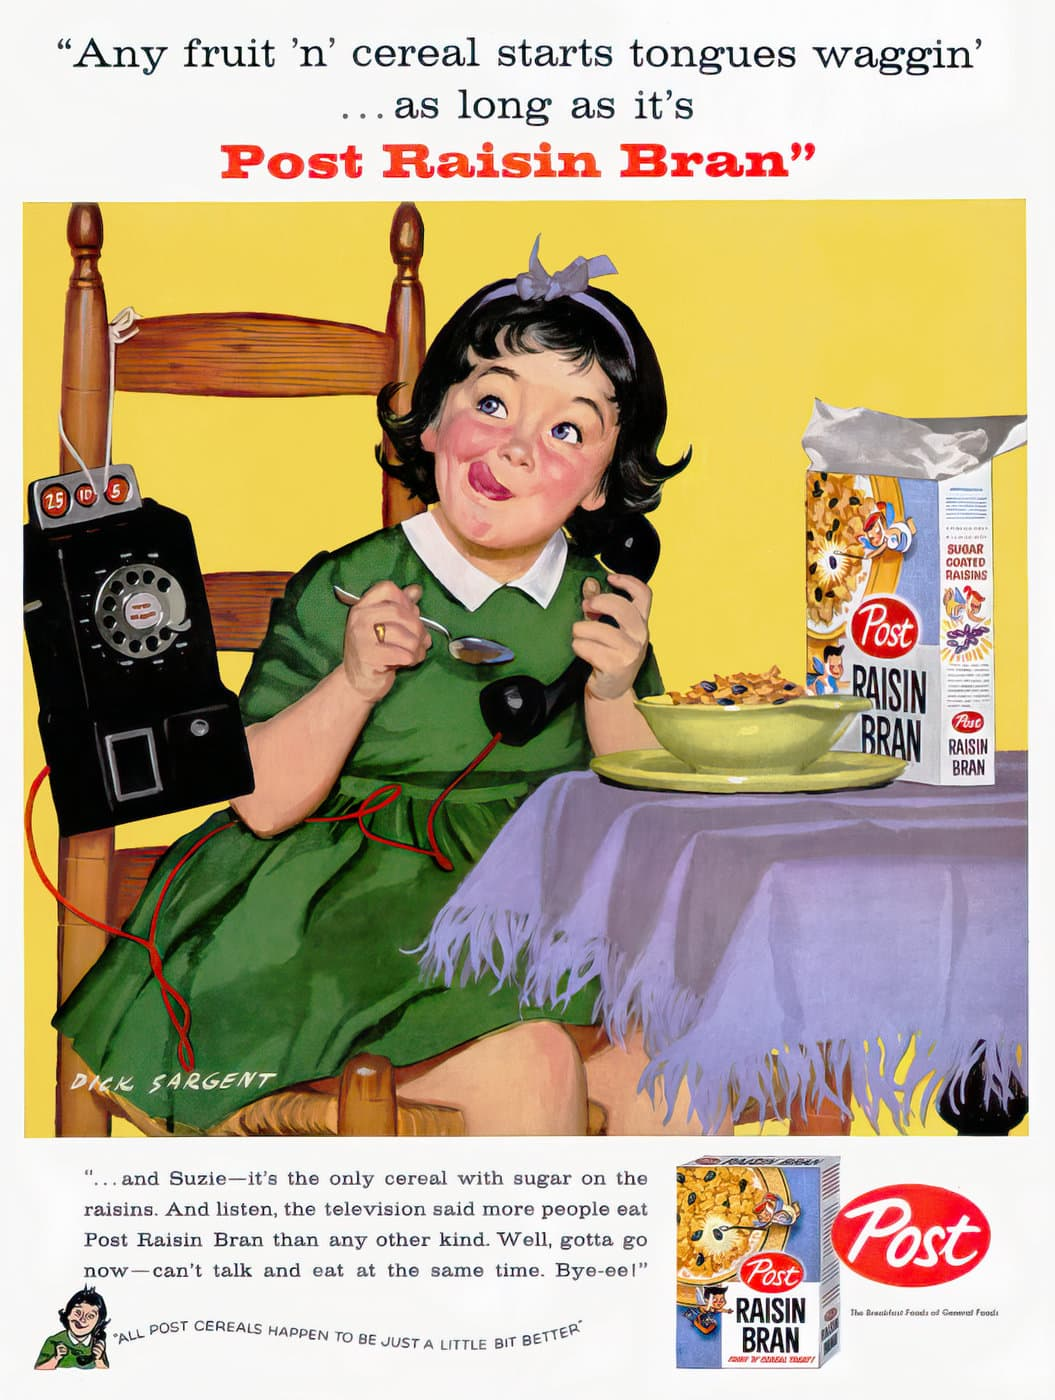 1950s Post Raisin Bran cereal